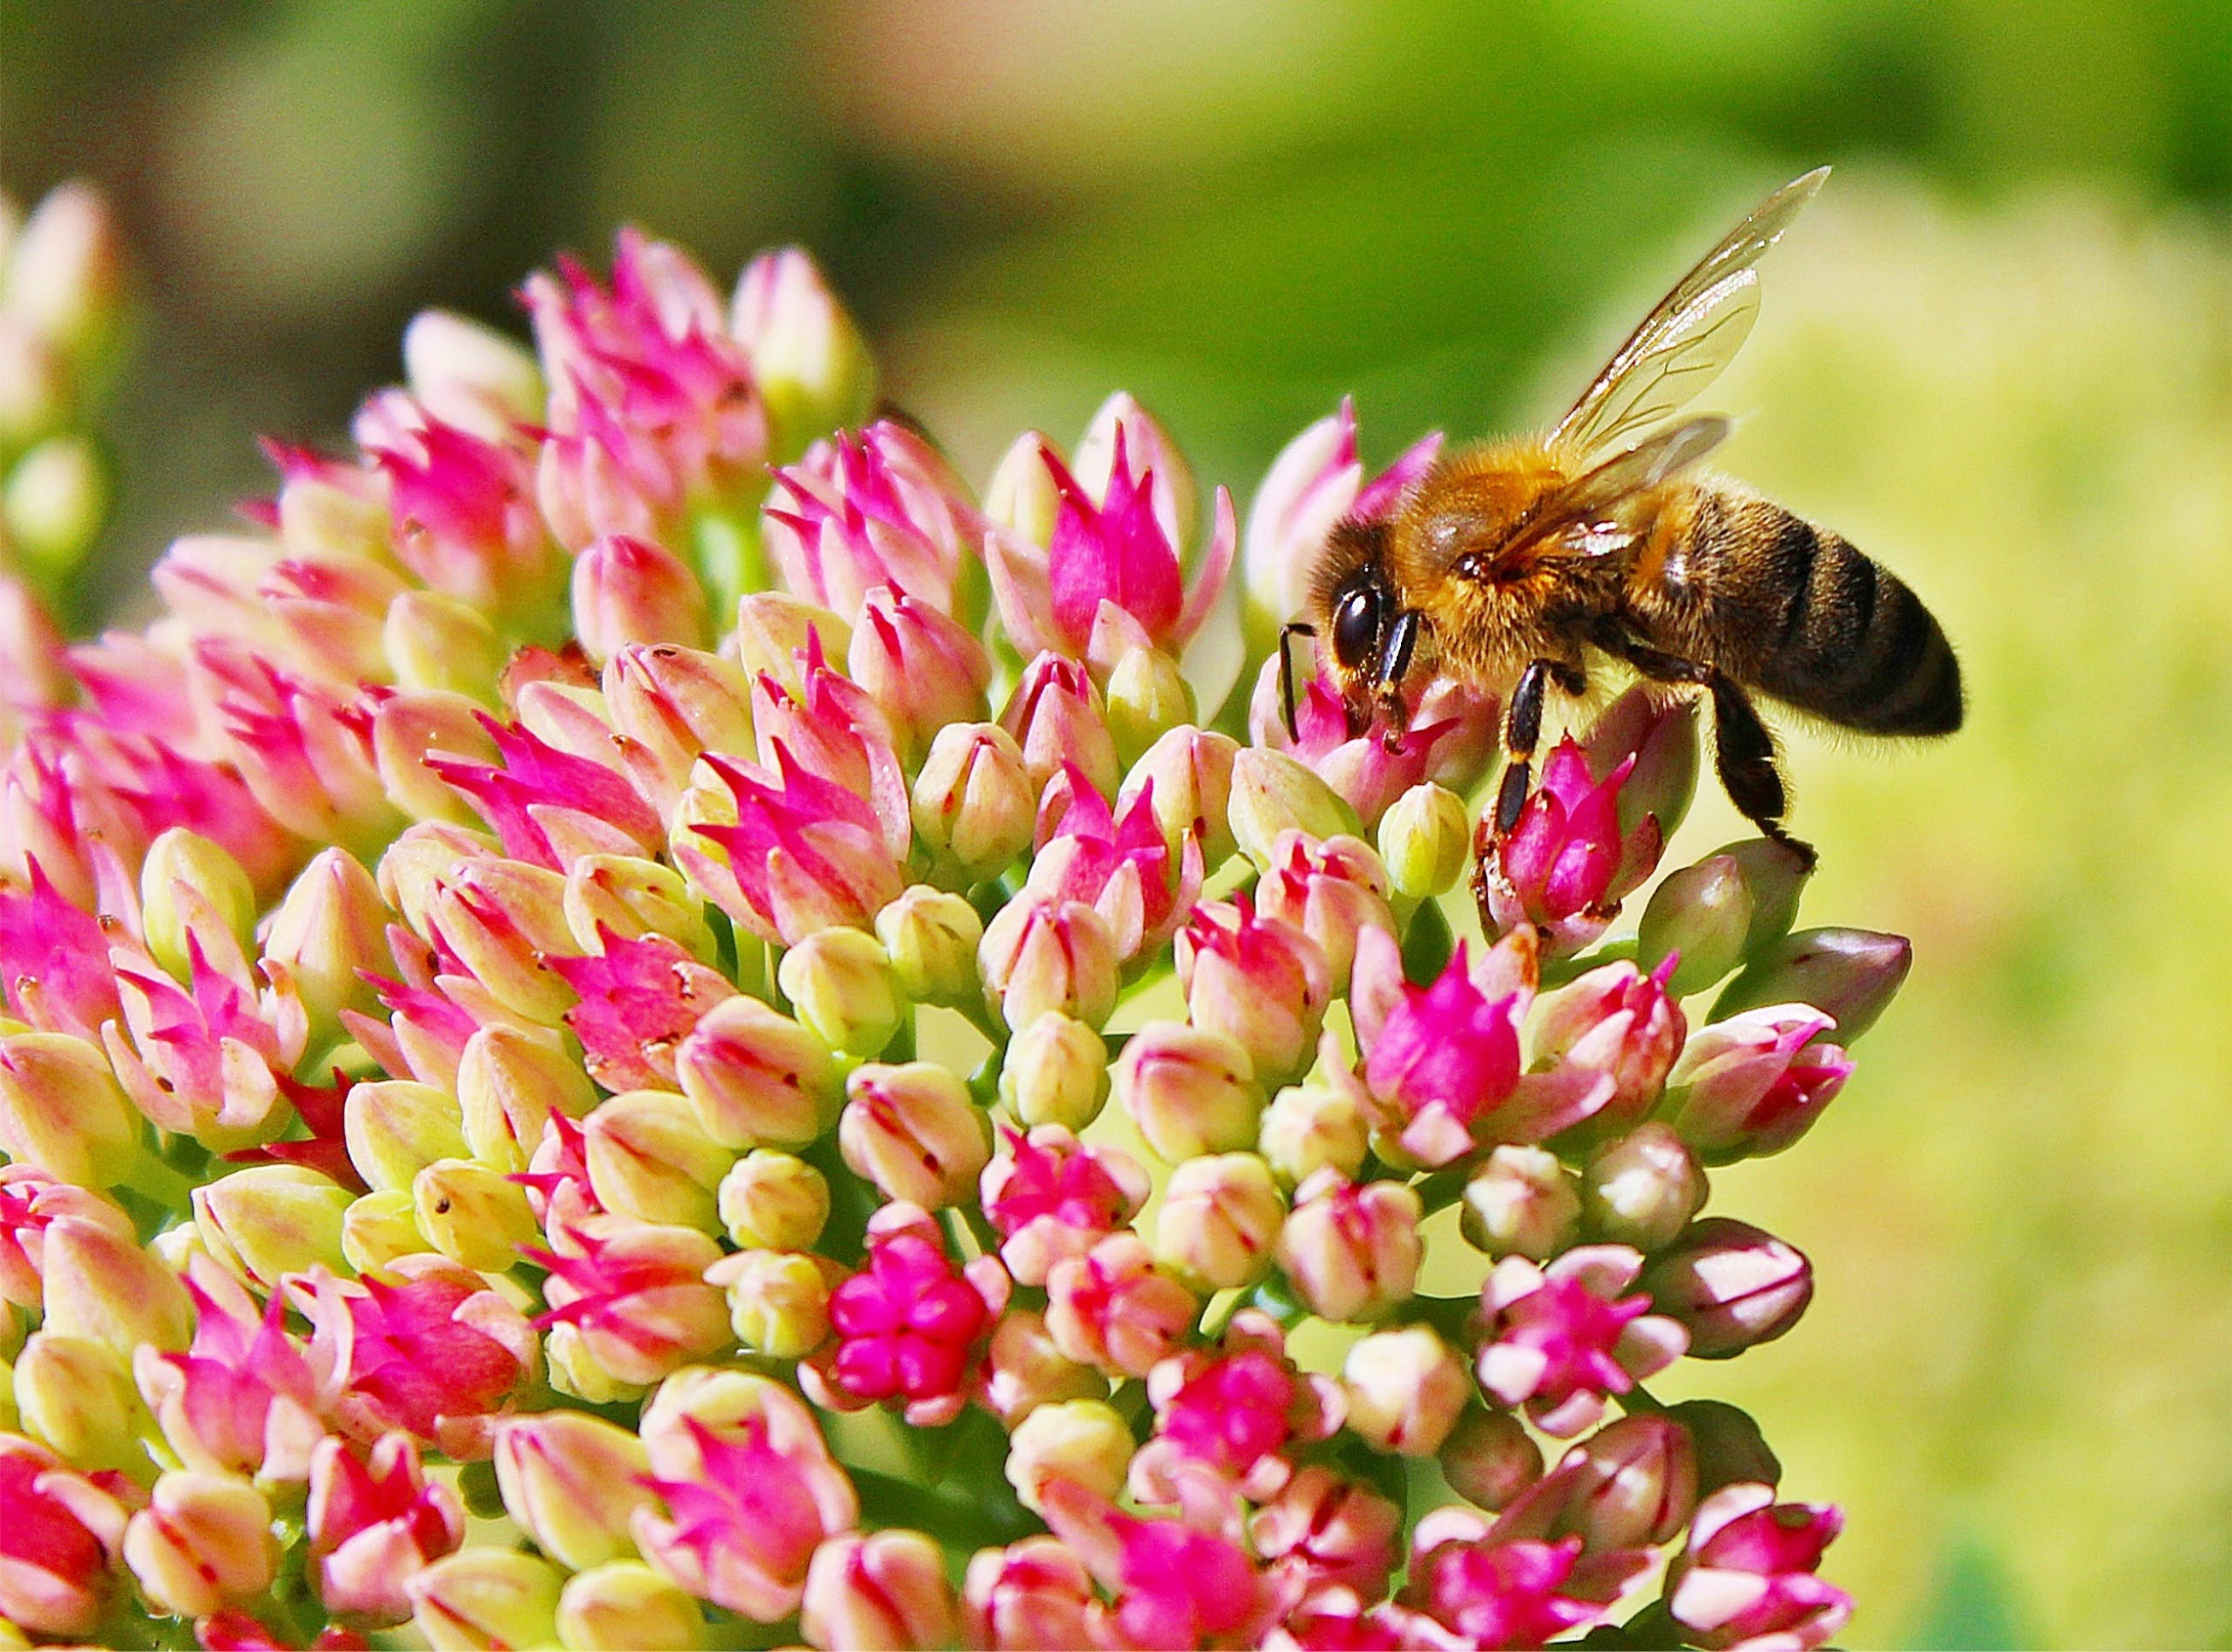 Shallow Focus Photo of Honey Bee on Flower